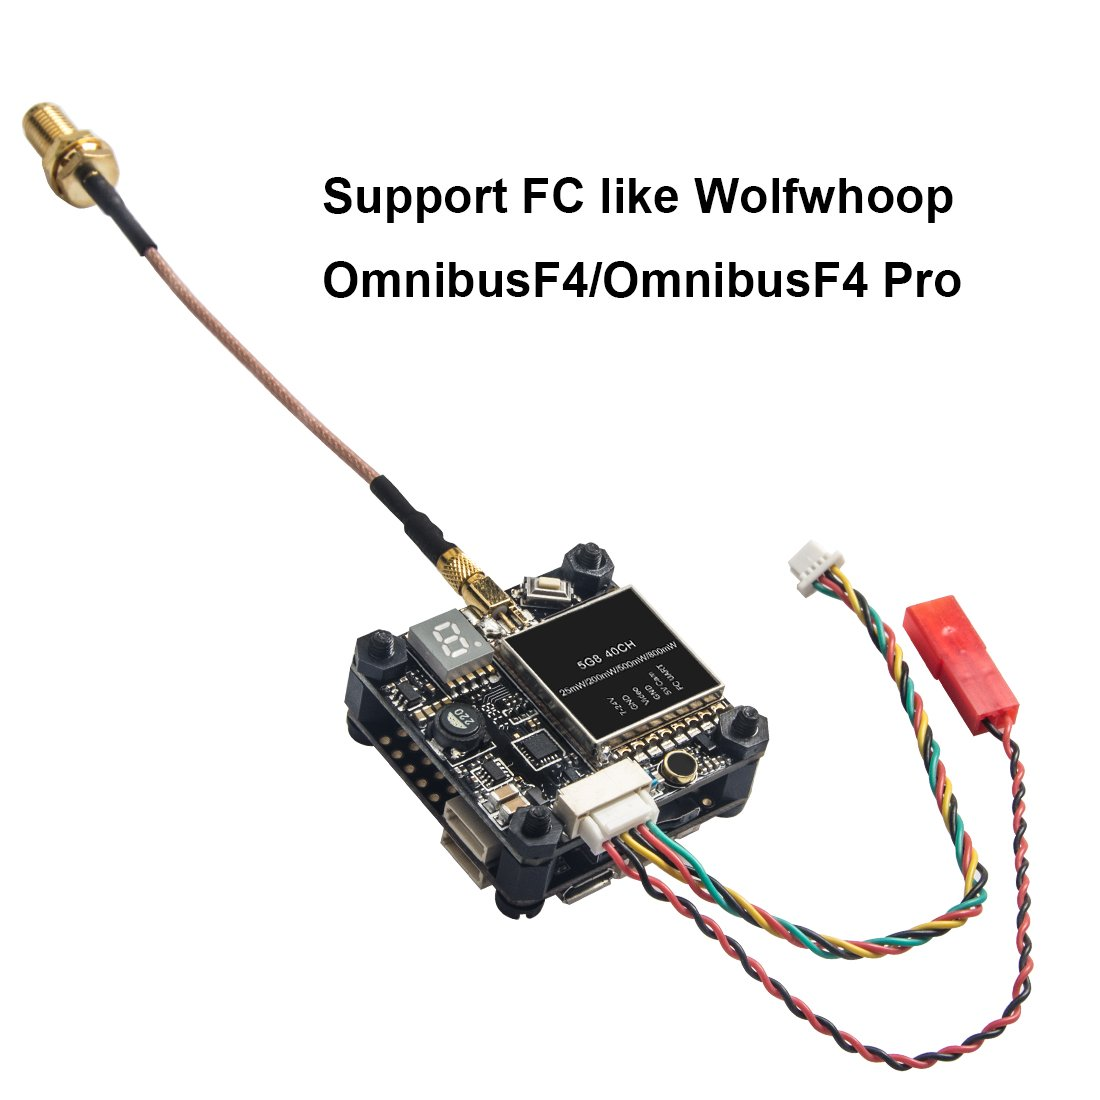 Wolfwhoop Q3-S 5.8GHz 0.01//25//200//500//800mW 37CH Switchable FPV Video Transmitter with MMCX to SMA Female and Integrated FC Uart Support VTX Settings in Betaflight OSD